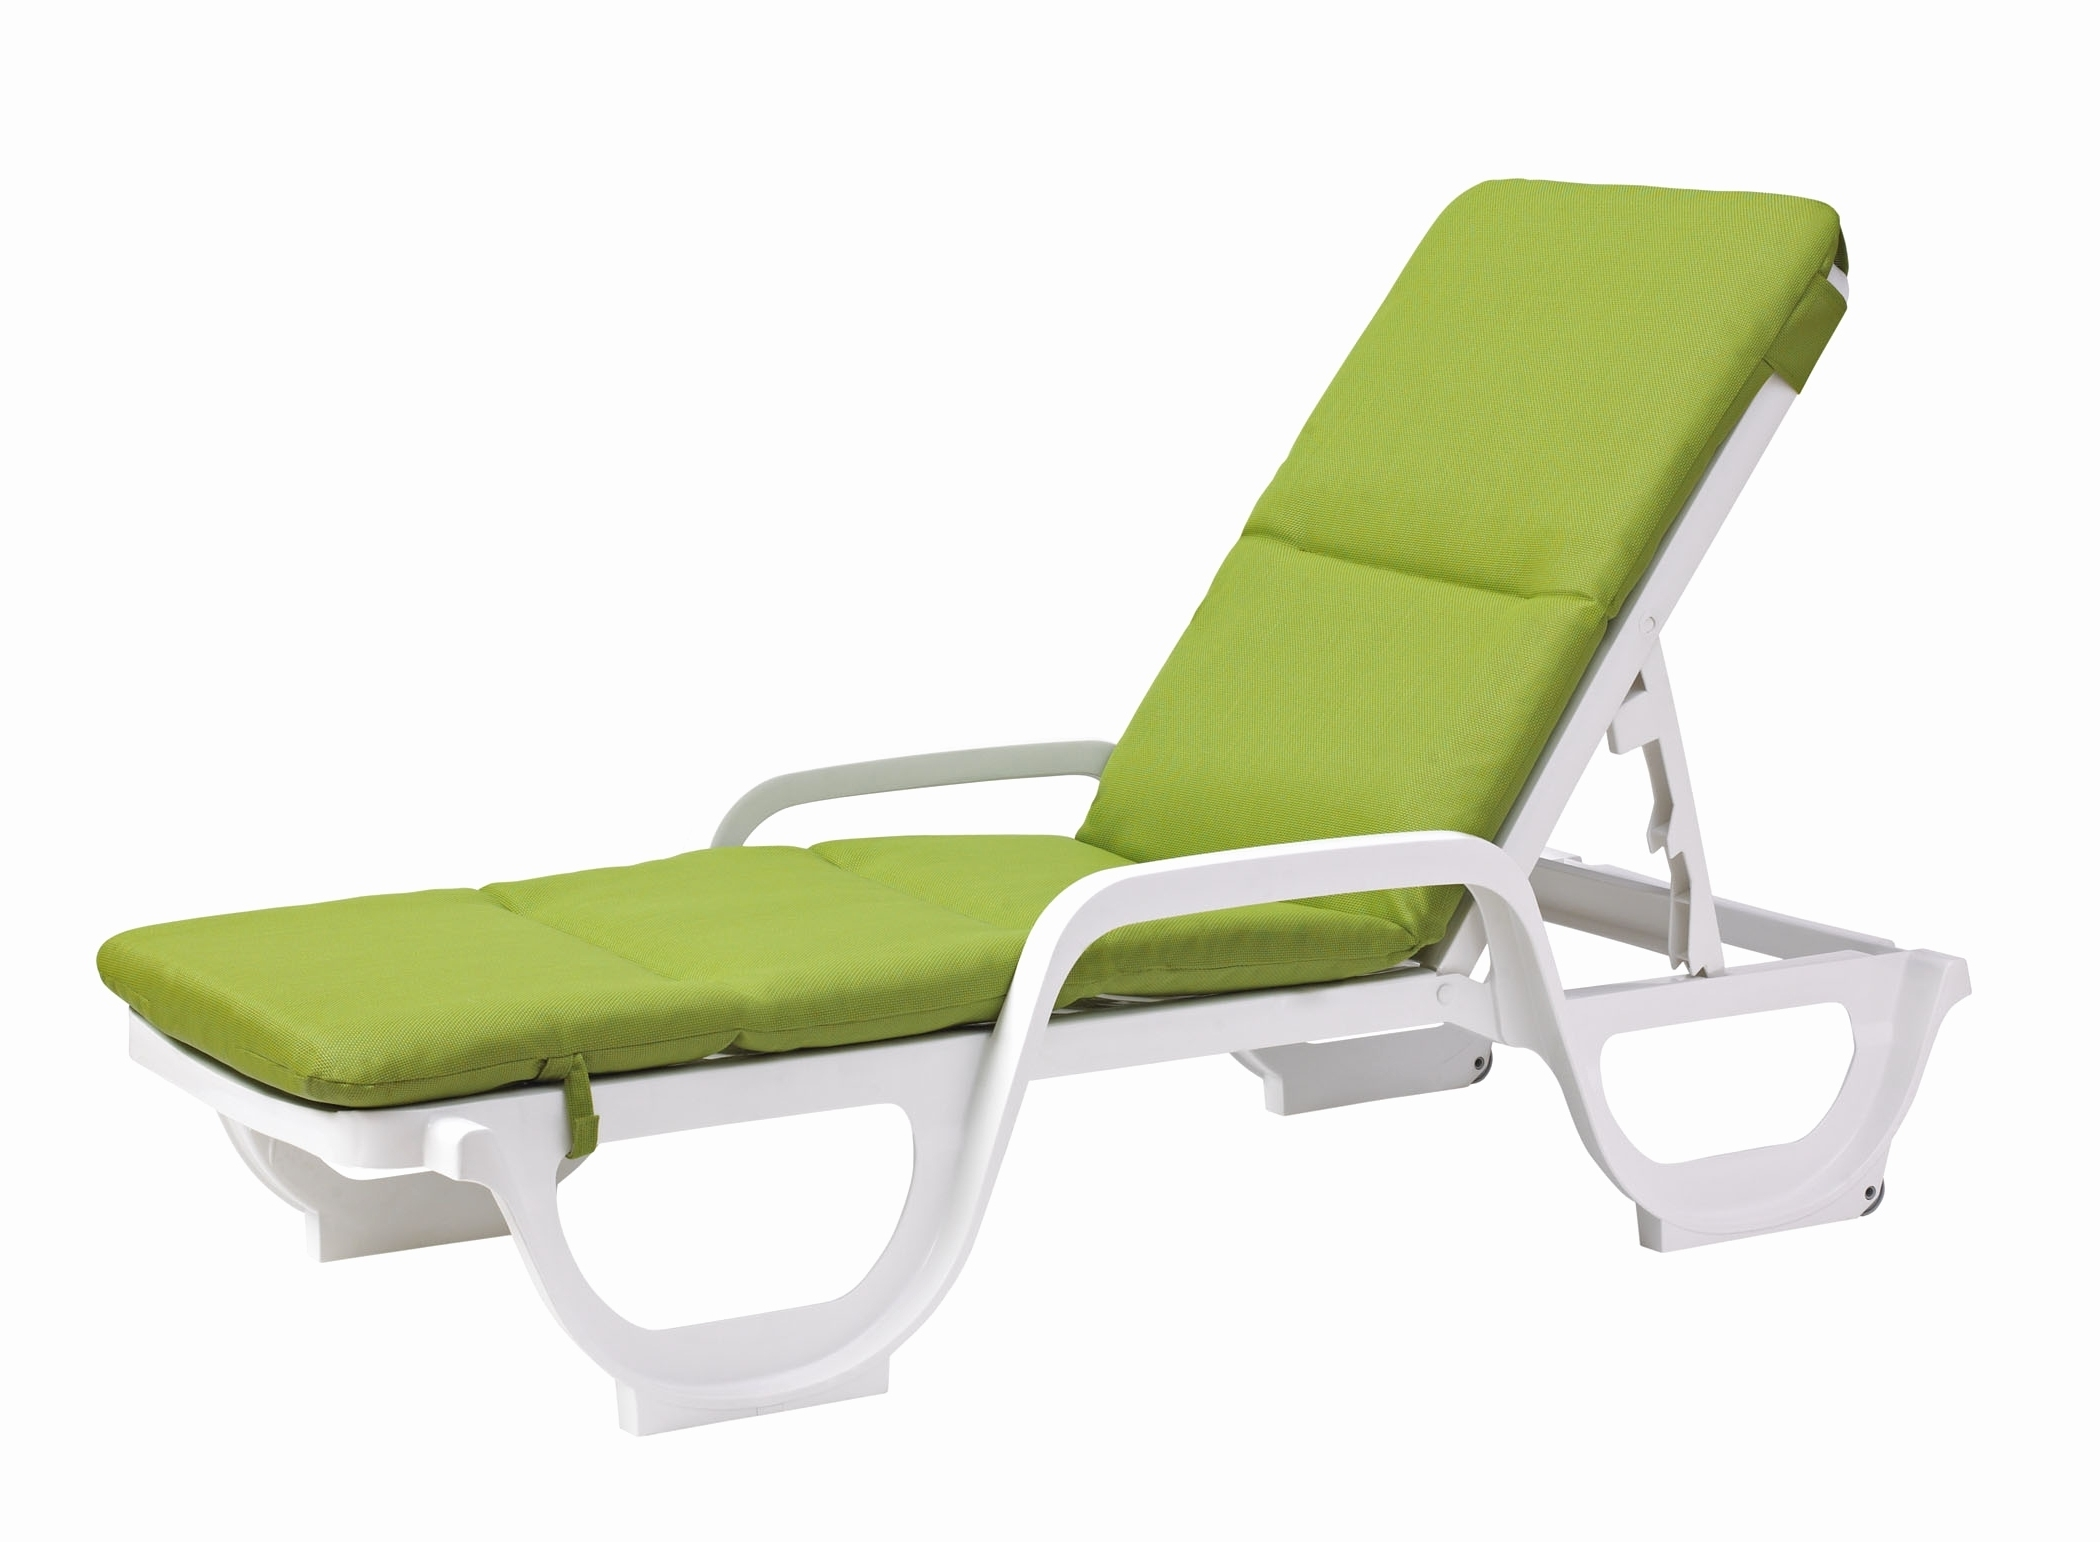 Outdoor : Folding Chaise Lounge Indoor Lounge Furniture Modern Throughout Popular Modern Outdoor Chaise Lounge Chairs (View 13 of 15)